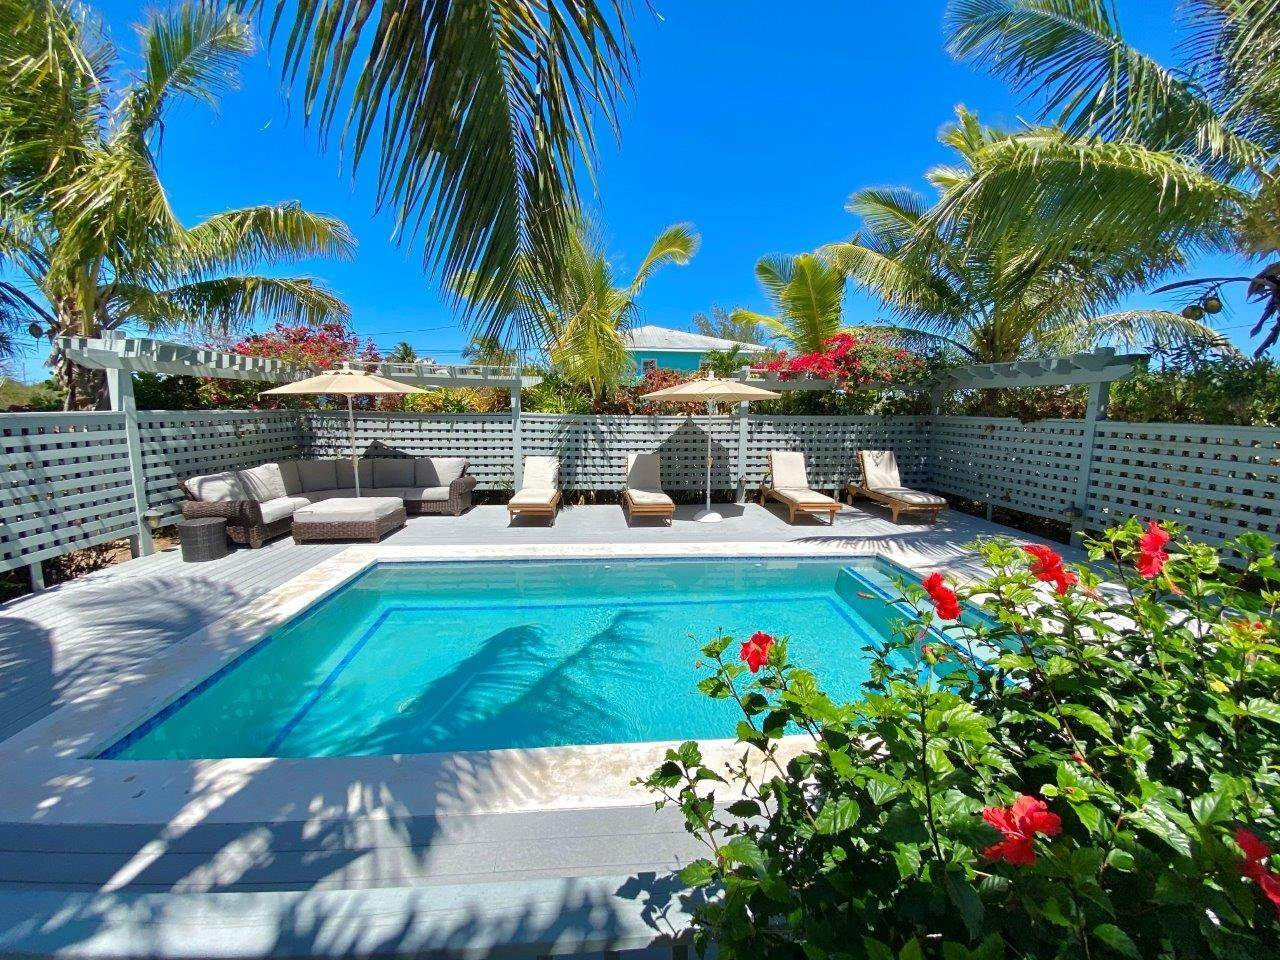 Single Family Homes for Sale at Fabulous Coastal Living Home in Governor's Harbour - MLS 44509 Governors Harbour, Eleuthera, Bahamas